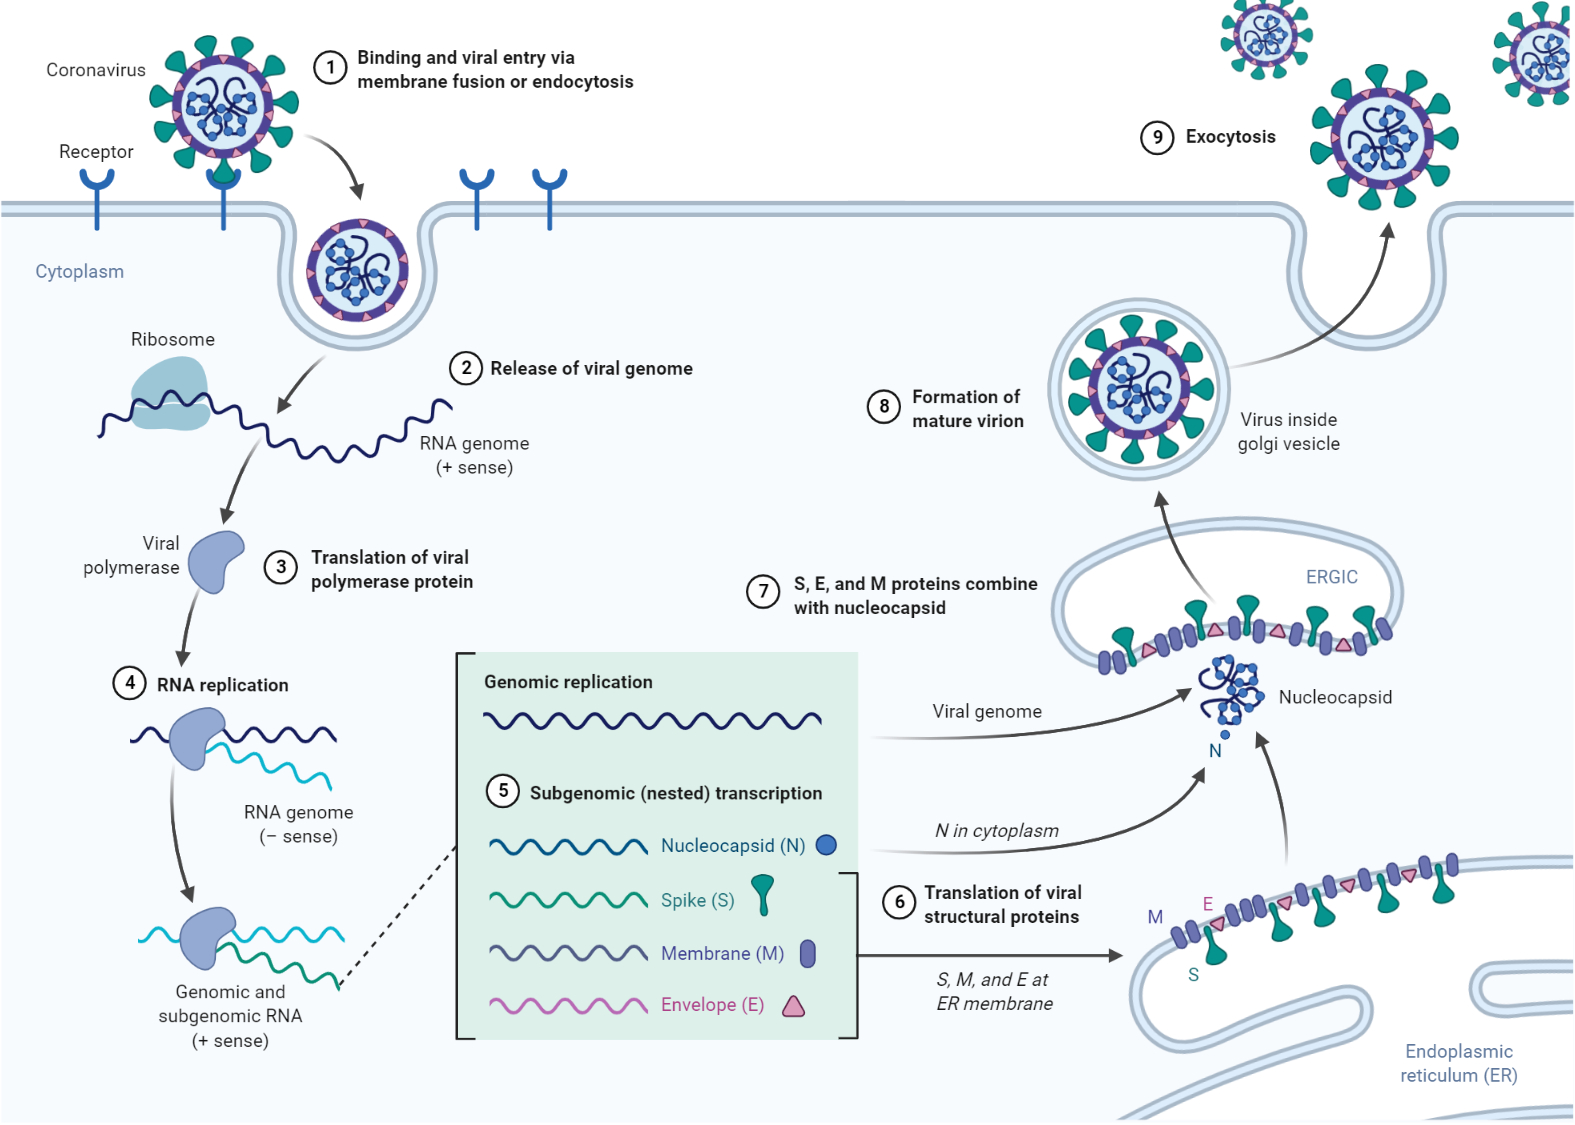 Replication of Coronavirus